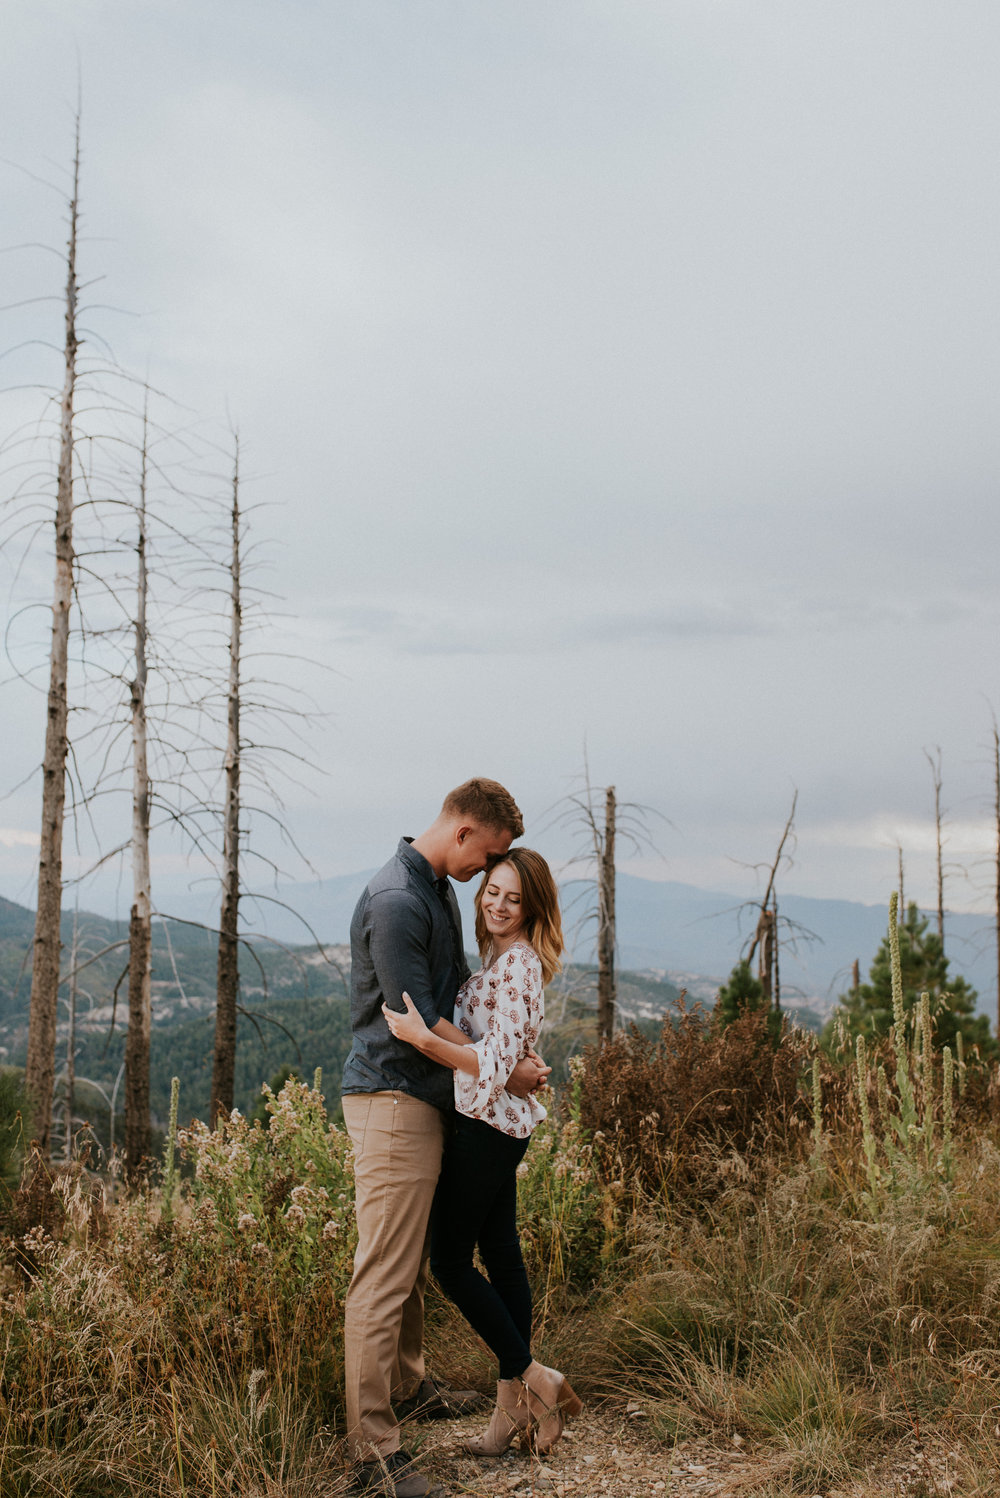 Fall Stormy Engagement Session Mount Lemmon-15.jpg